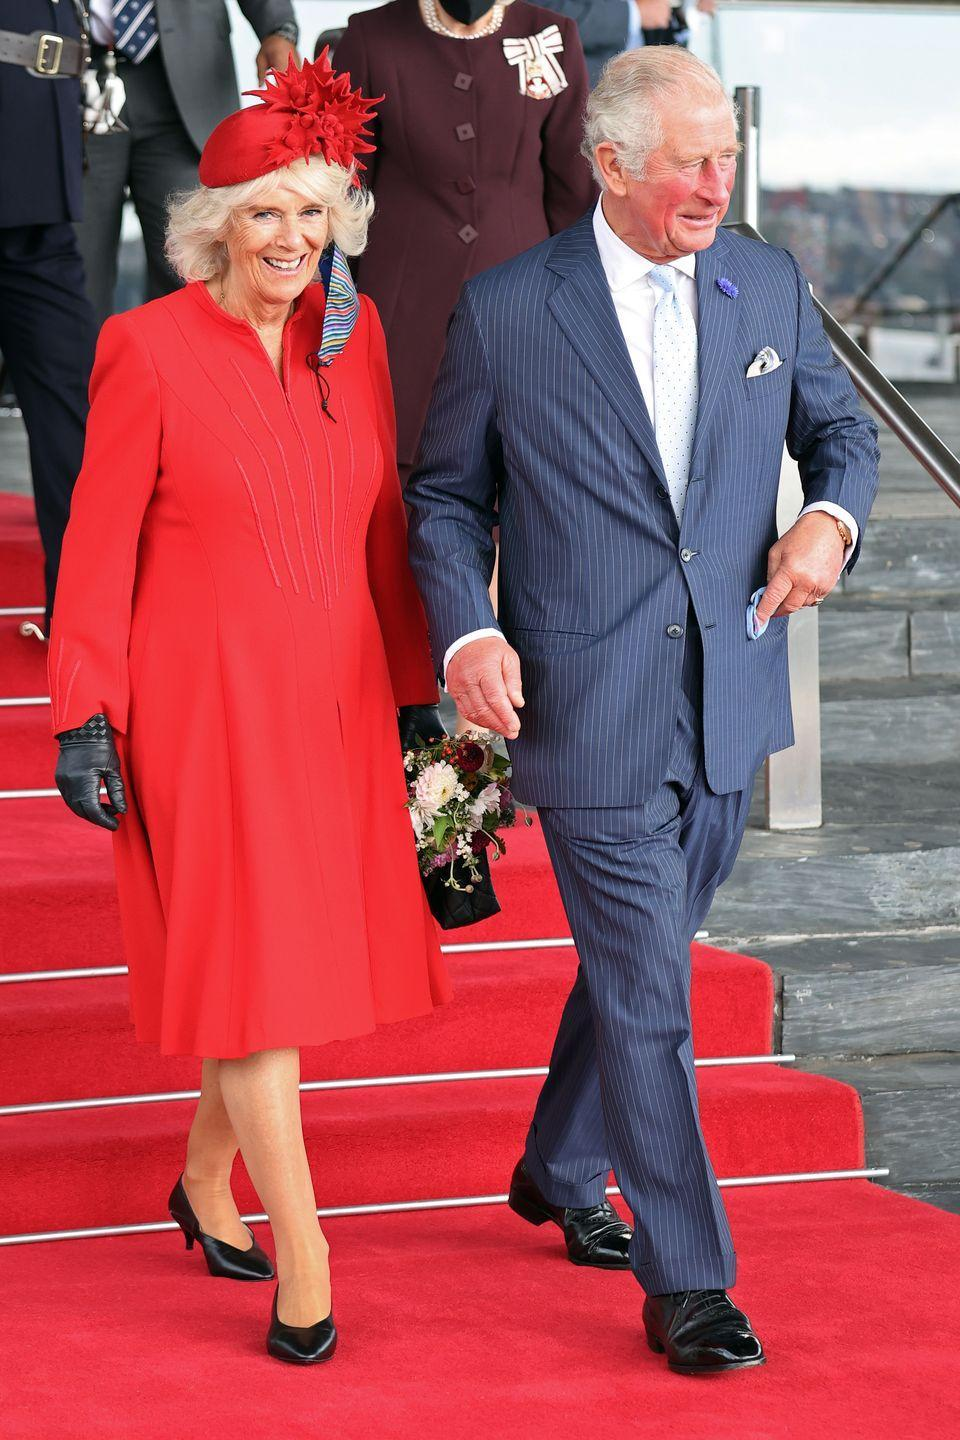 """<p>The Duchess of Cornwall matched the decor, wearing a red long-sleeved dress and hat in Wales. She accompanied Prince Charles and Queen Elizabeth to the <a href=""""https://twitter.com/ClarenceHouse/status/1448631216962473991"""" rel=""""nofollow noopener"""" target=""""_blank"""" data-ylk=""""slk:opening of the Senedd"""" class=""""link rapid-noclick-resp"""">opening of the Senedd</a> (the Welsh Parliament), where they were greeted by a 21-gun salute. </p>"""